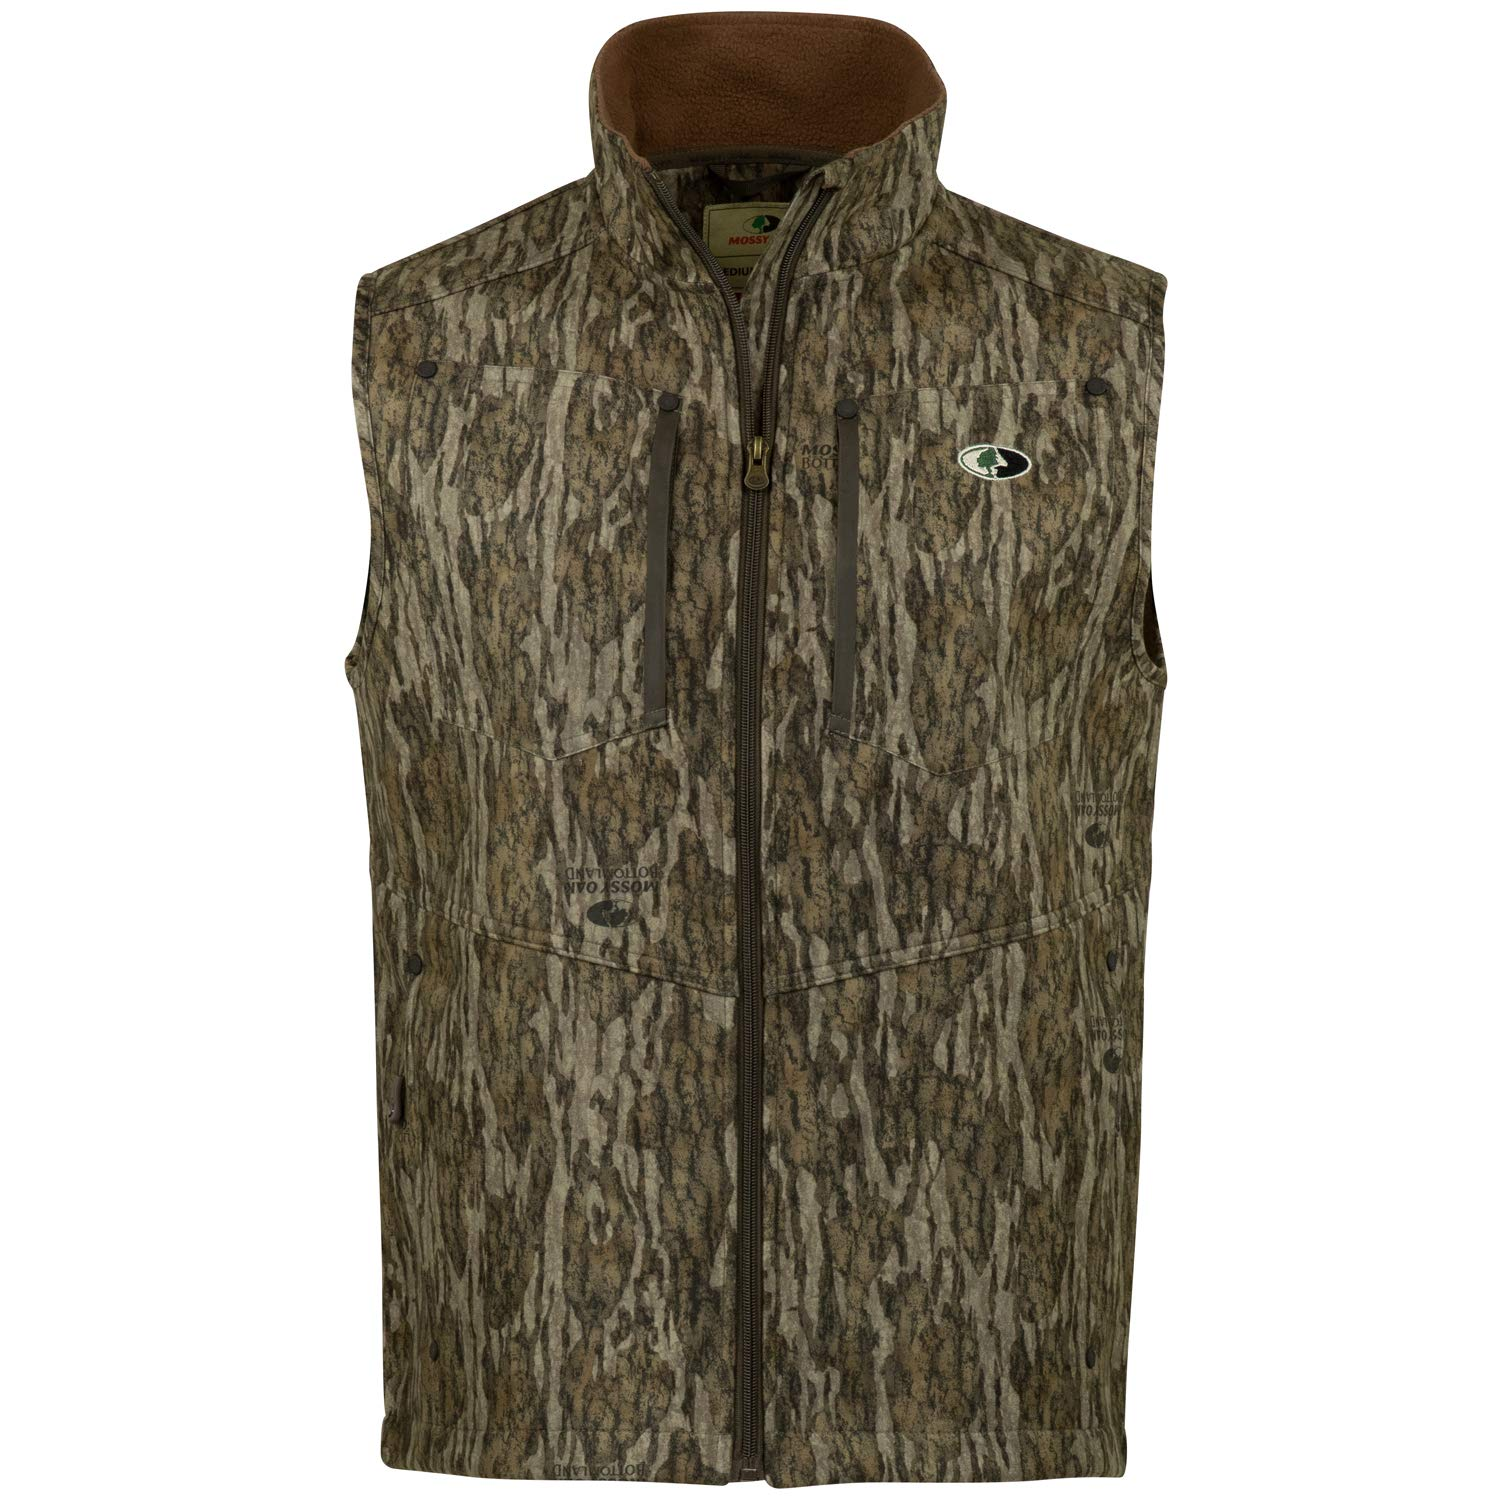 Mossy Oak Men's Camo Sherpa 2.0 Fleece Lined Hunting Vest, Bottomland, XX-Large by Mossy Oak